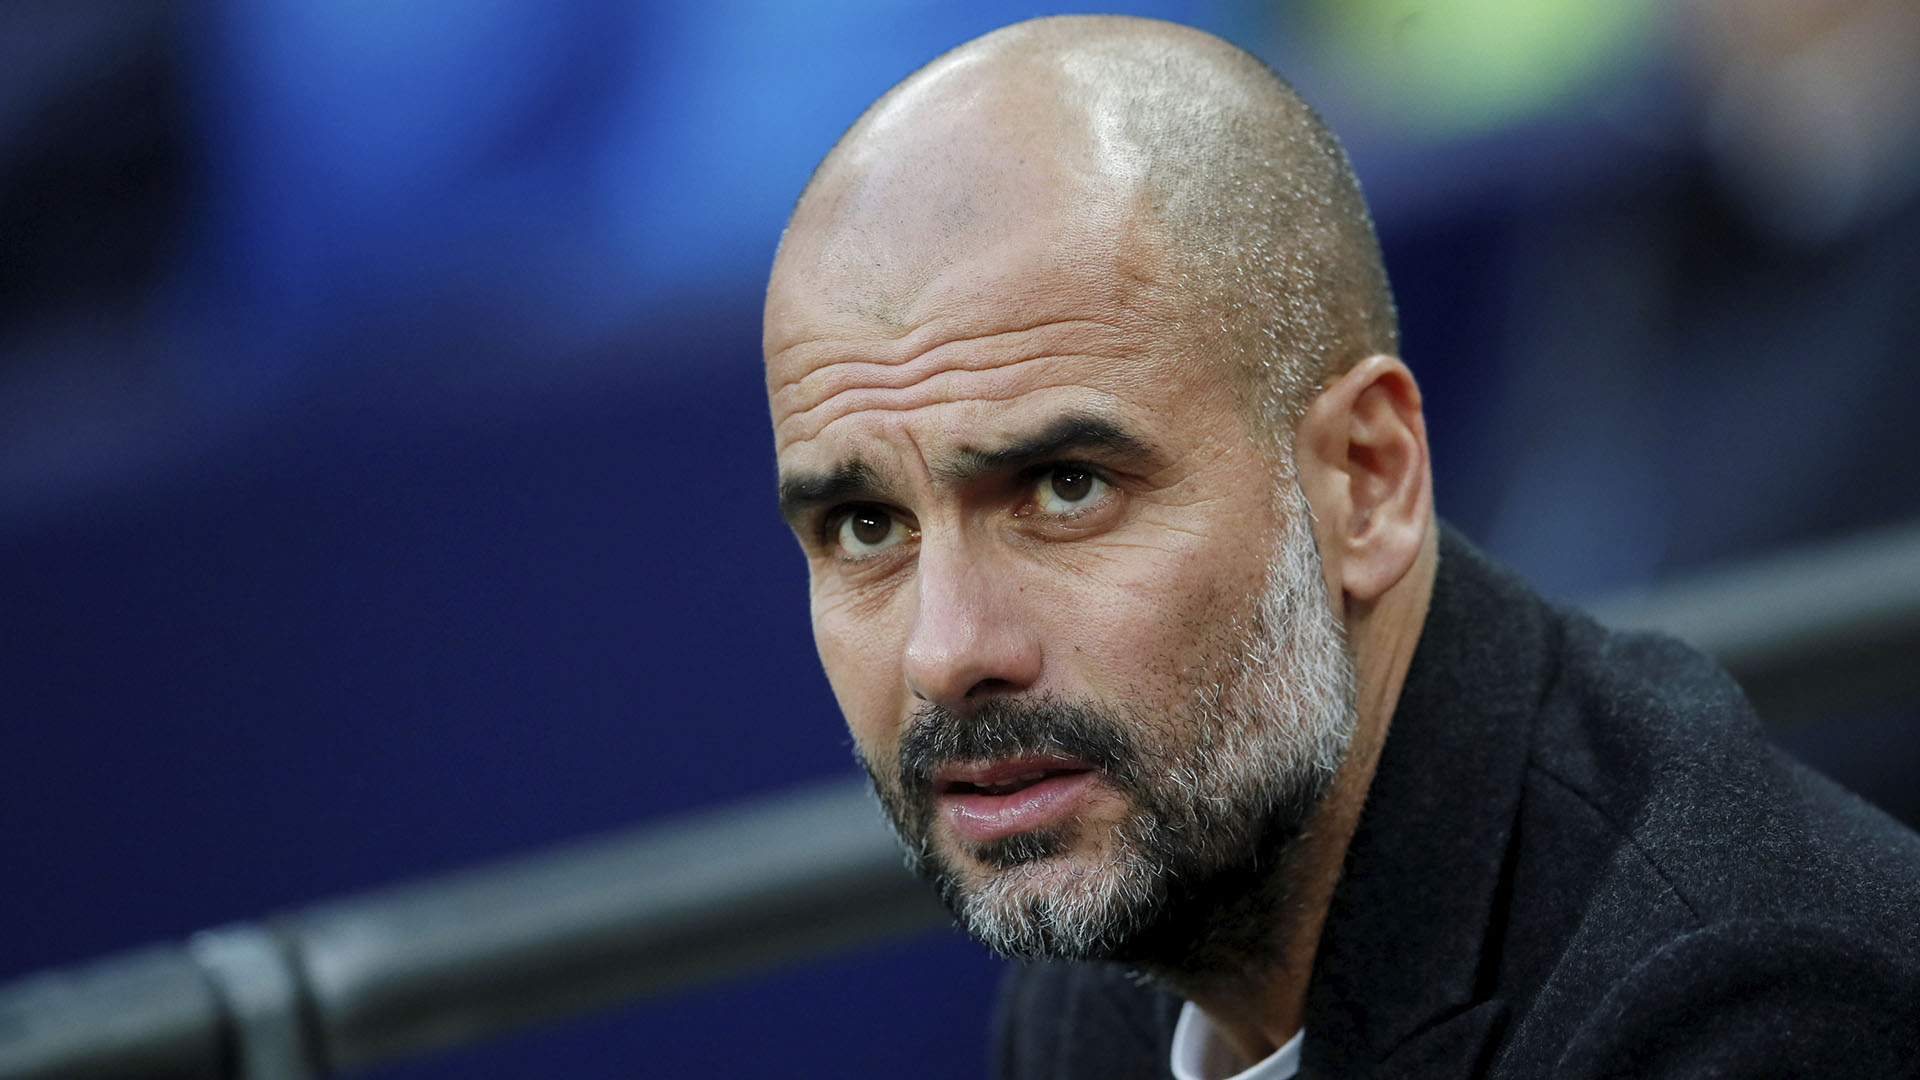 Guardiola sigue acumulando refuerzos con el objetivo de ganar la Champions League (Reuters)